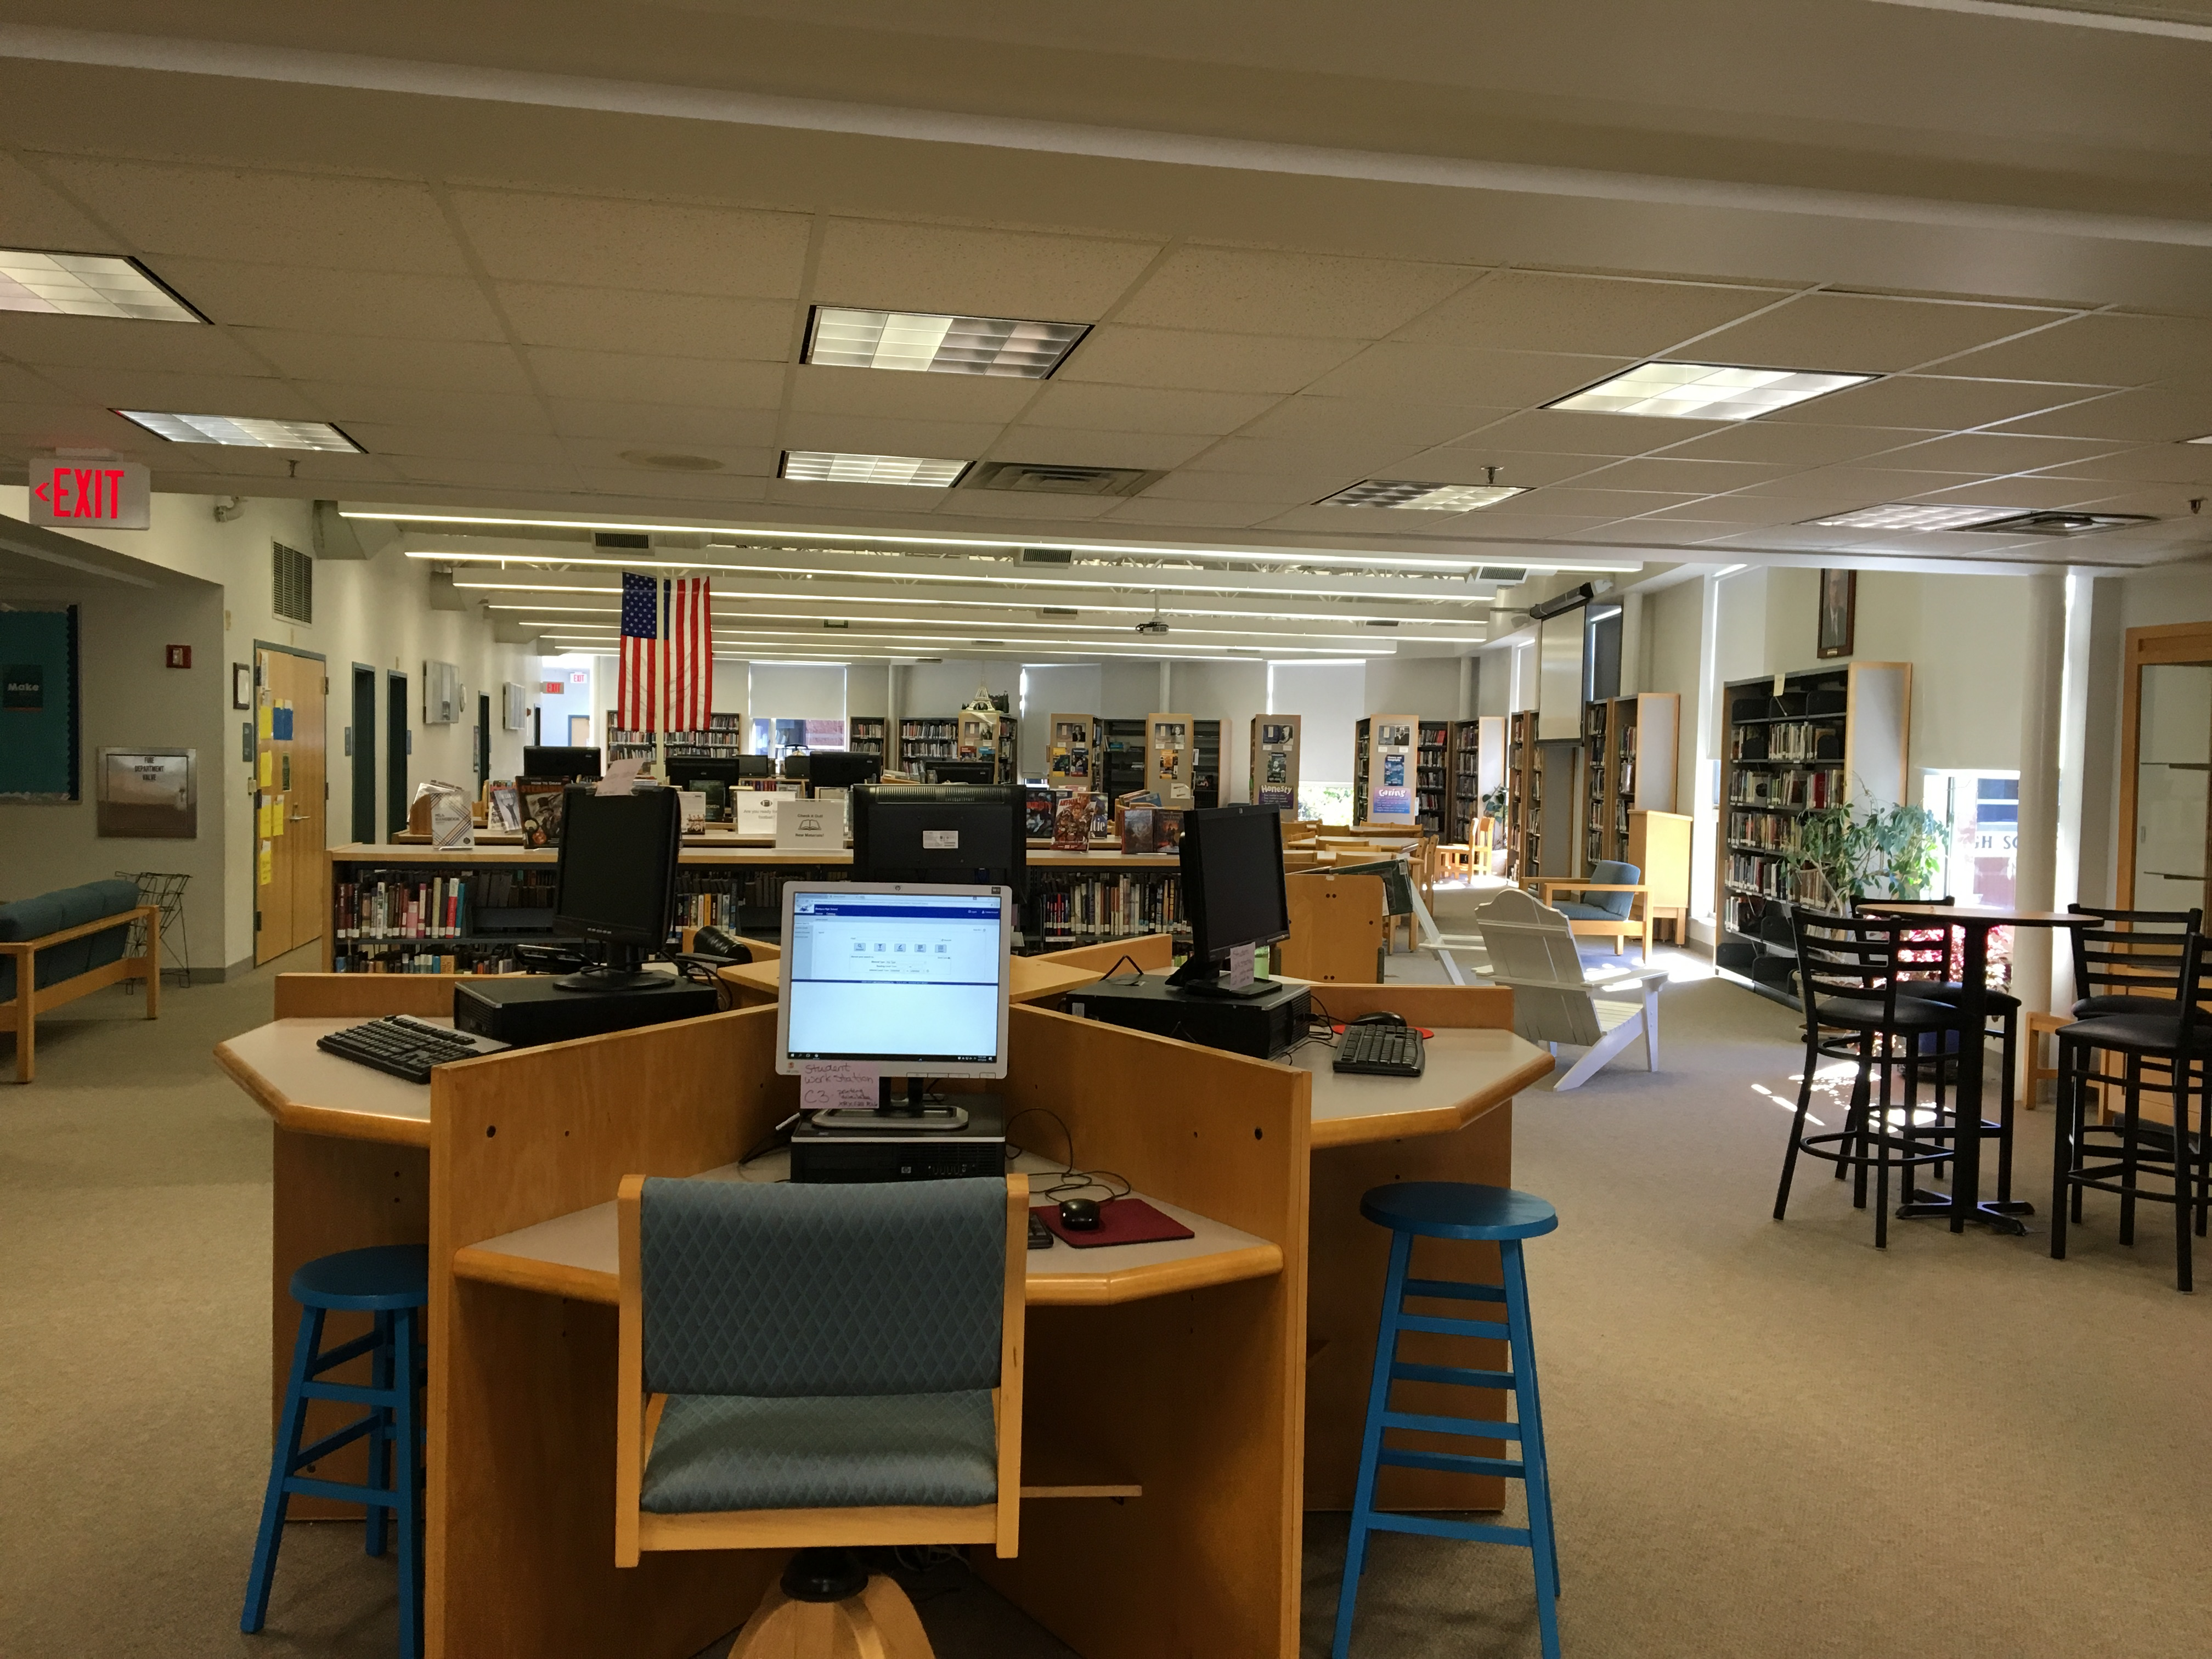 Mashpee Middle High School Learning Commons